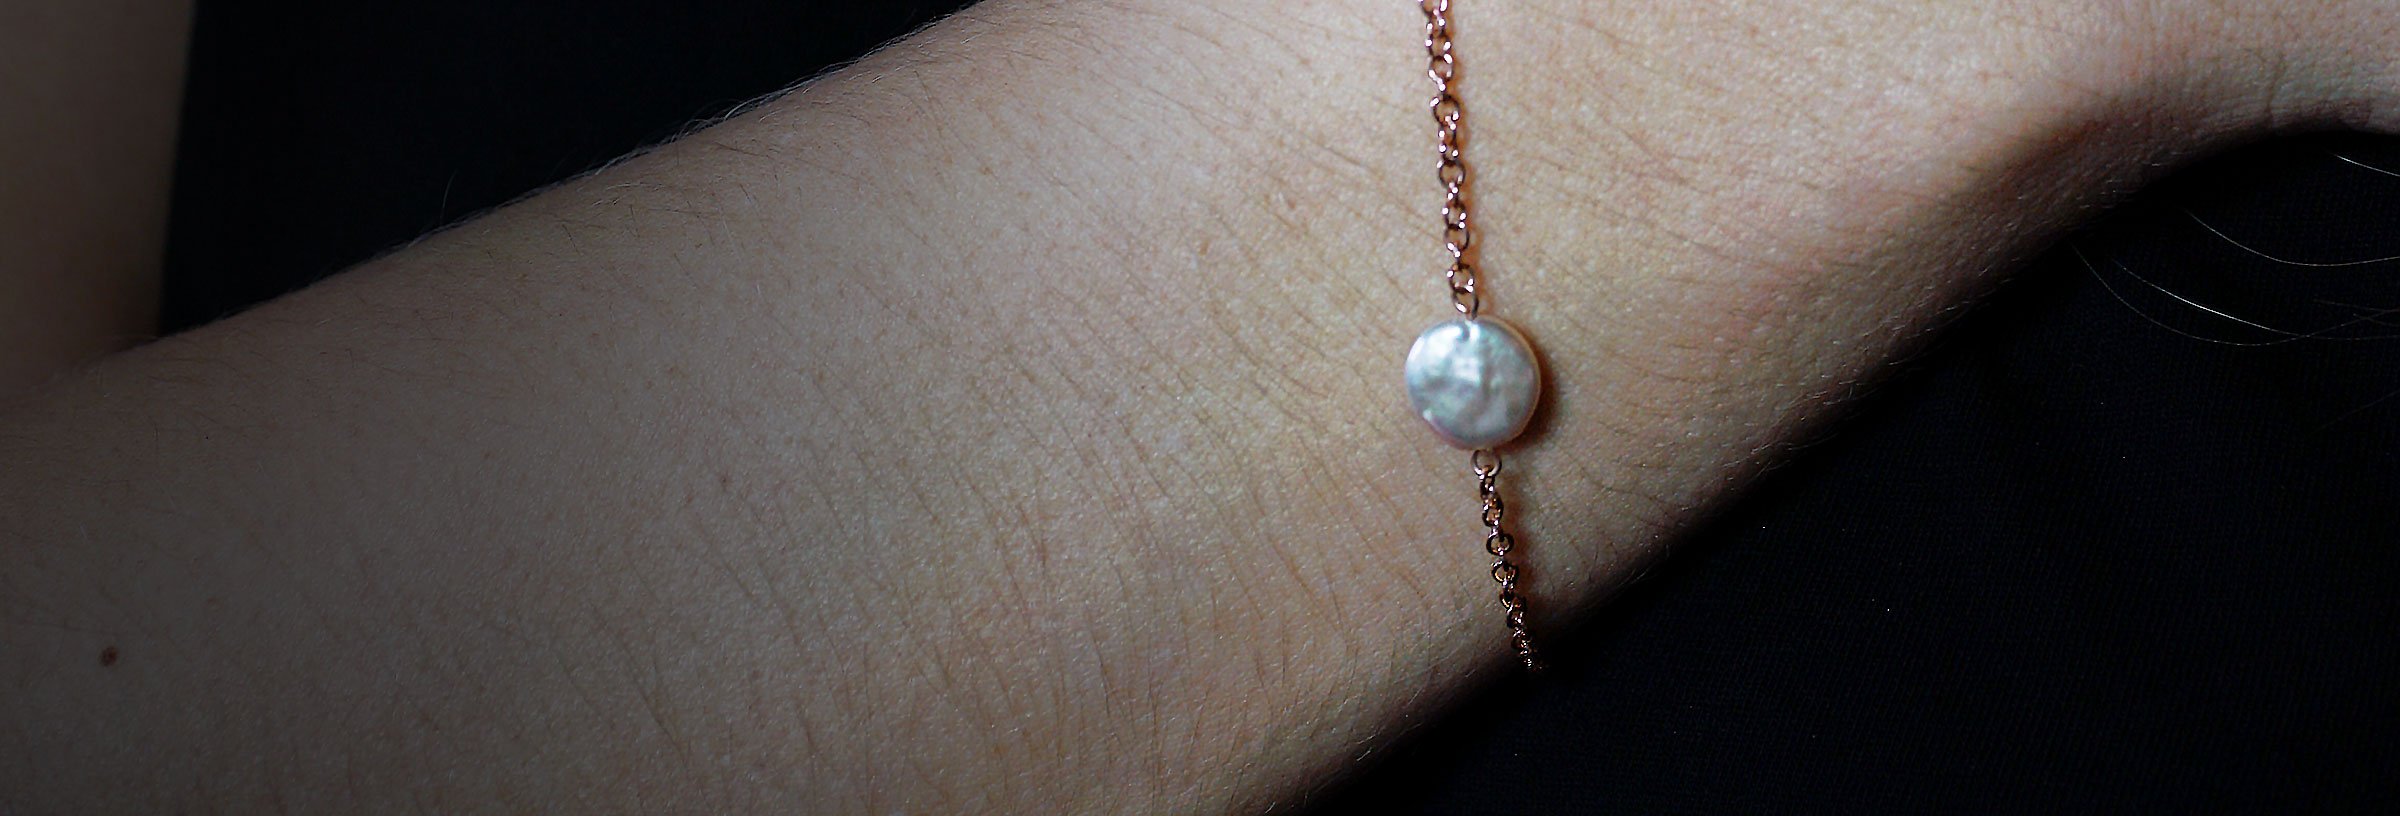 rose-gold-chain-bracelet-with-ivory-coin-pearl